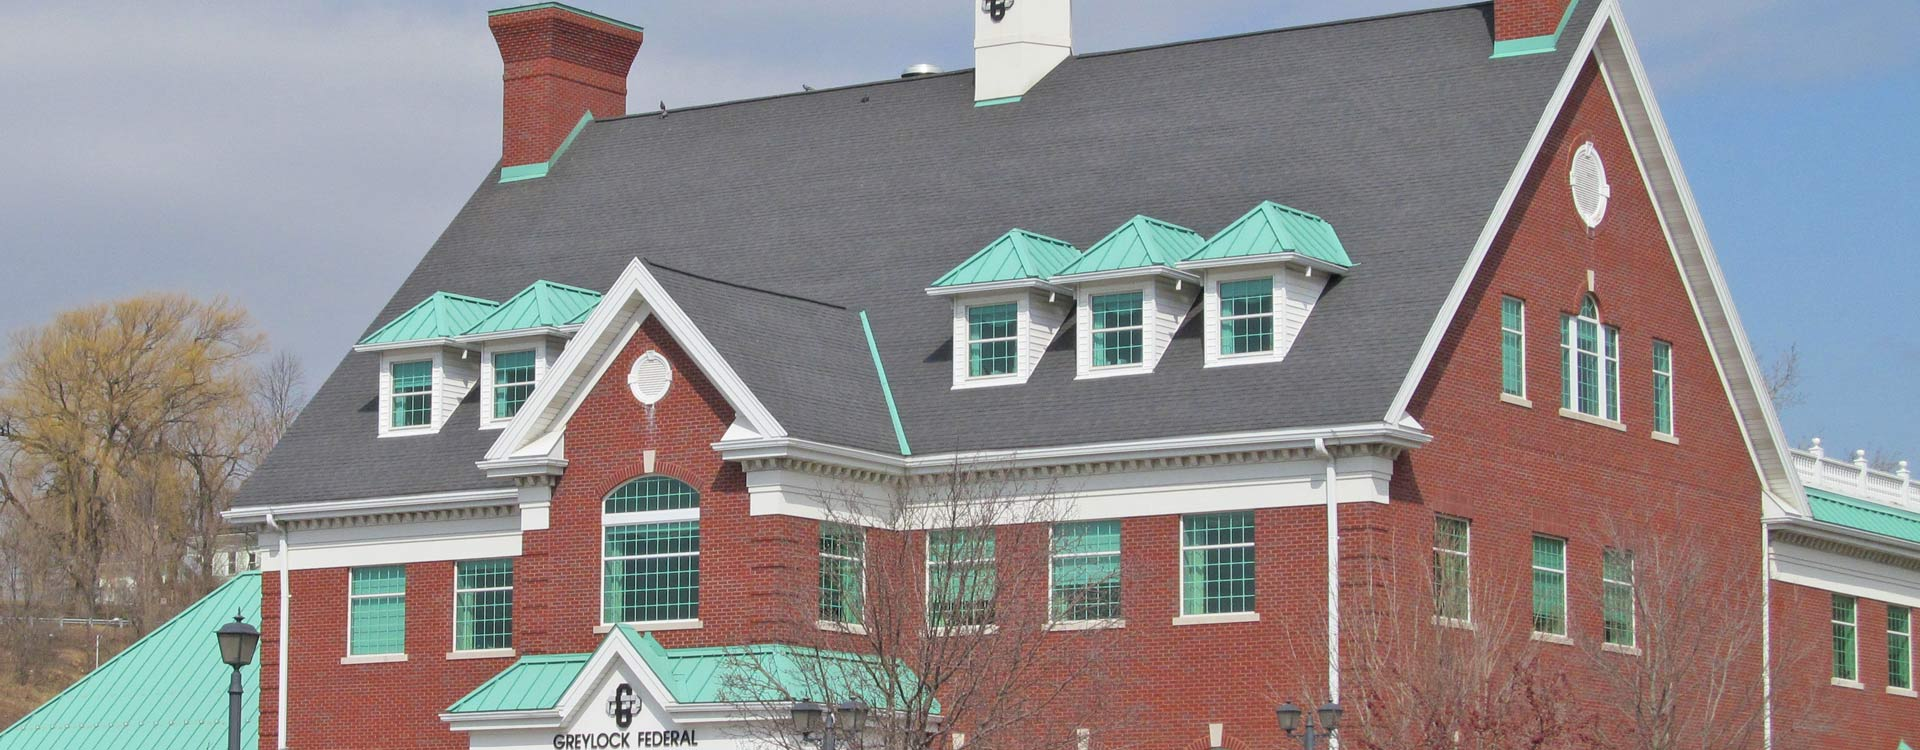 Vermont Roofing Company Project